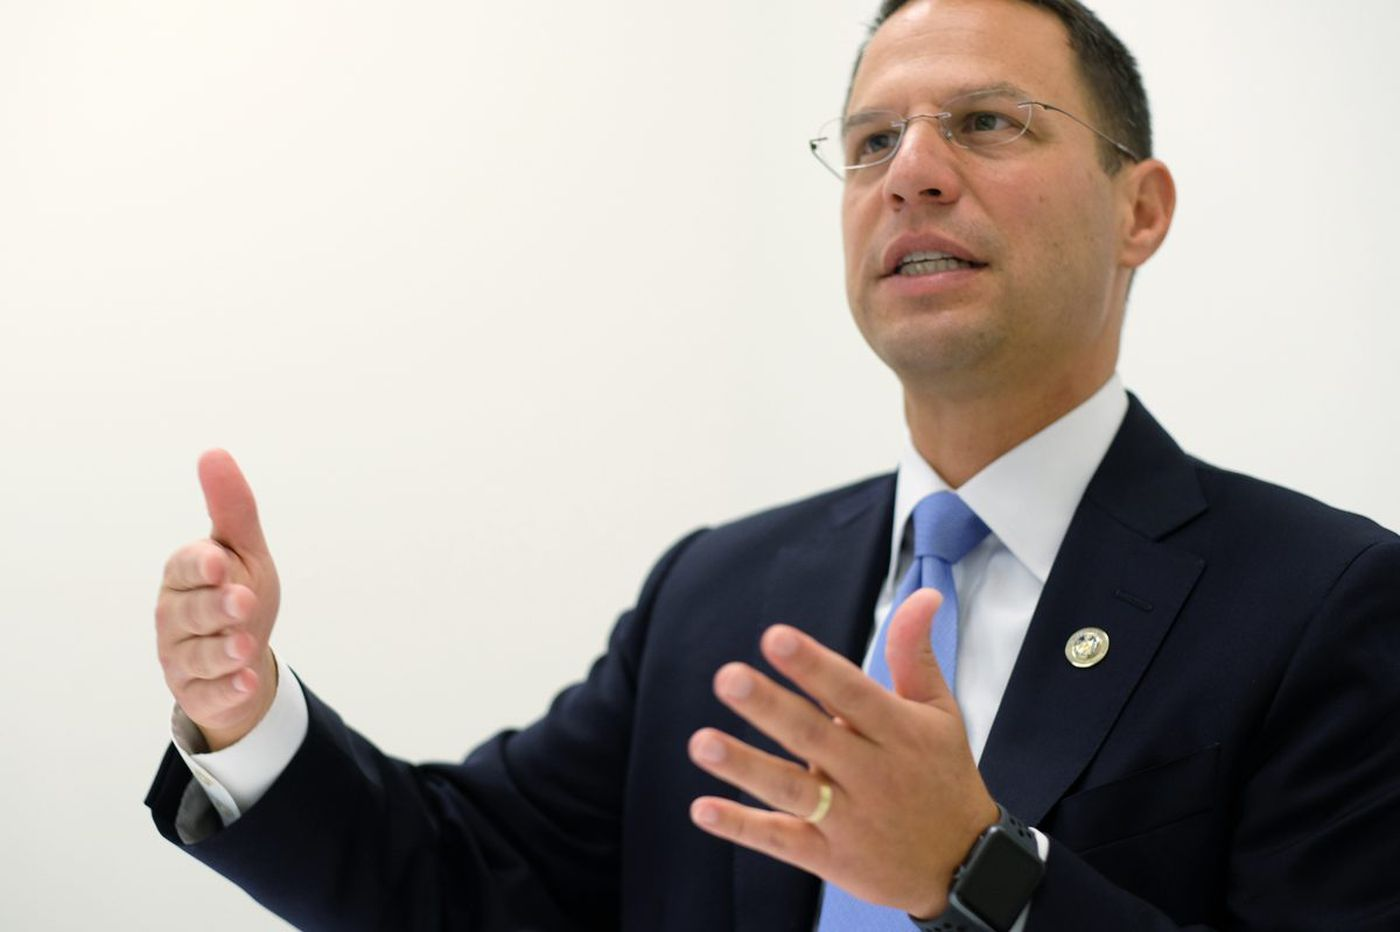 Pa. attorney general files suit against student-loan company